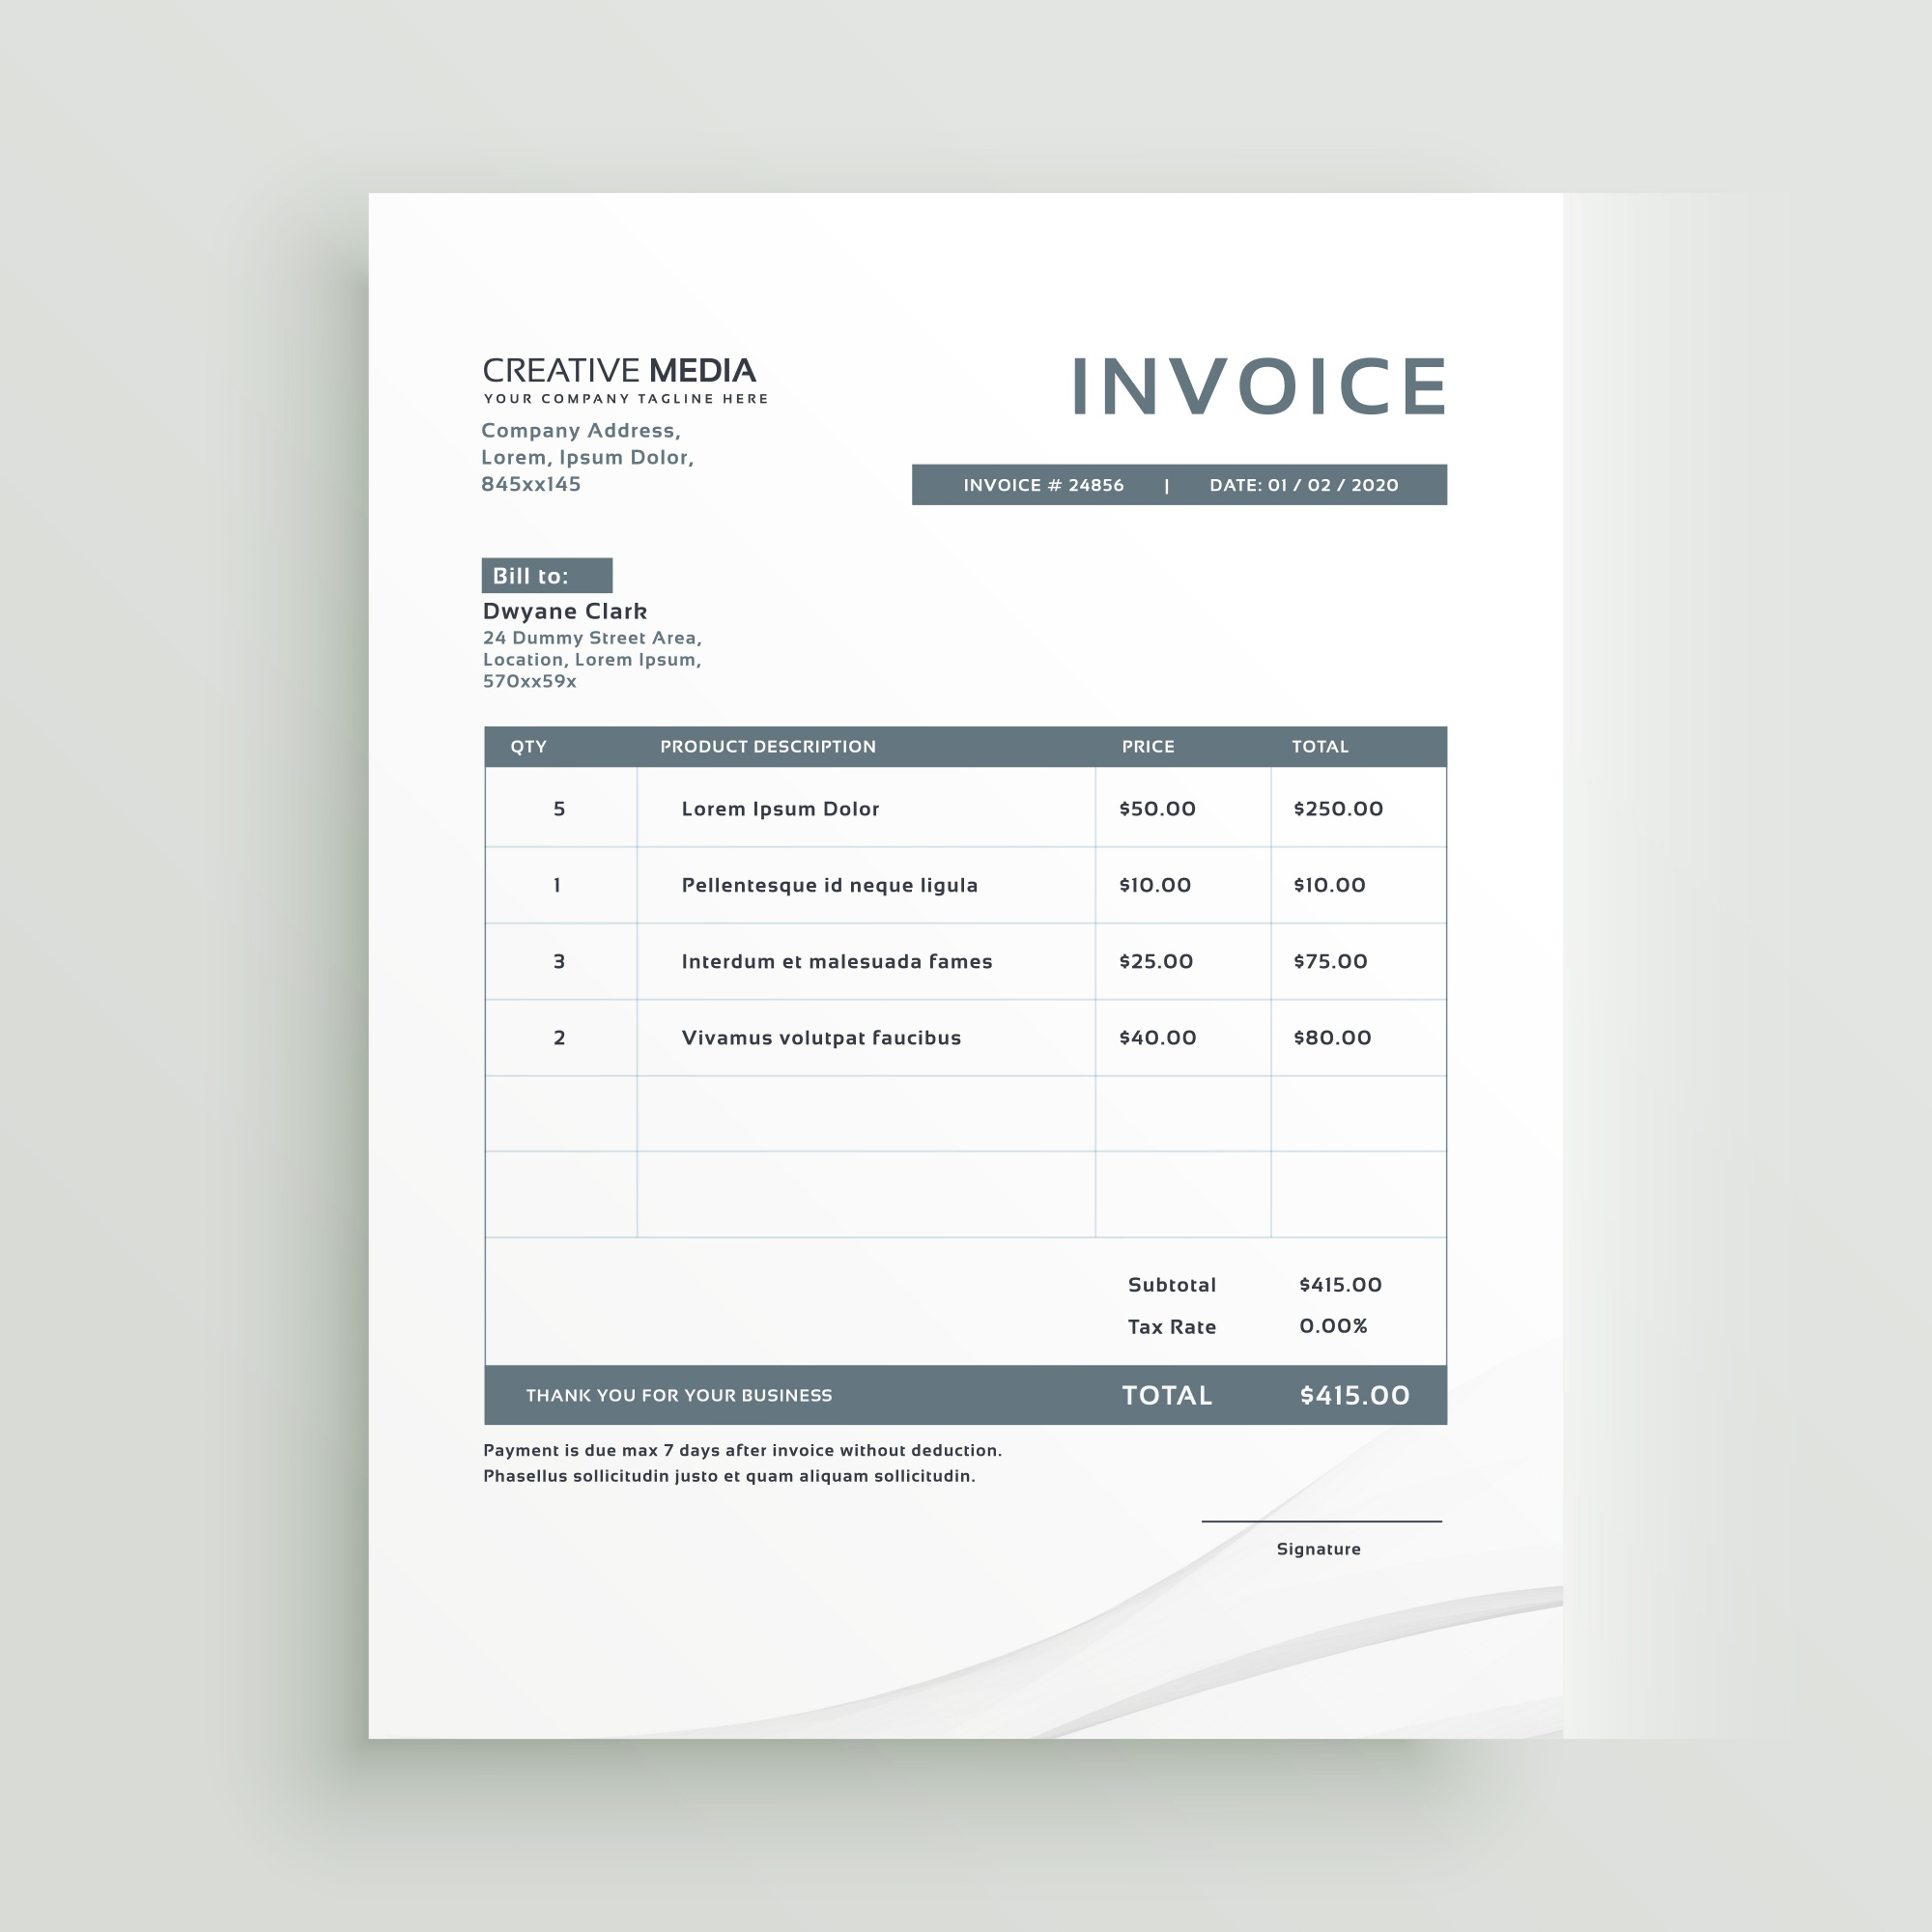 Invoice template design in minimal style